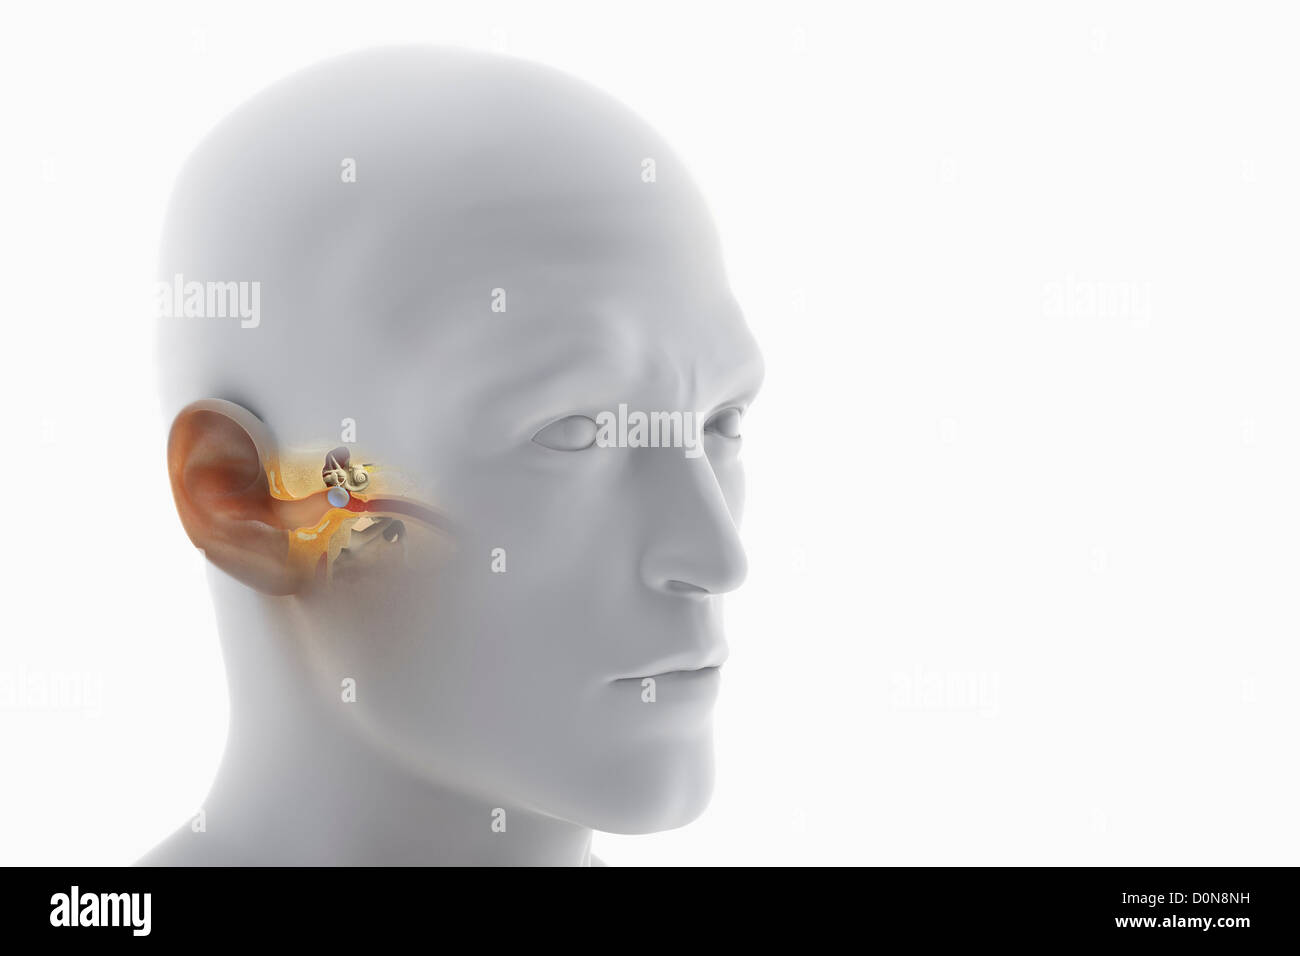 White Inner Ear Stockfotos & White Inner Ear Bilder - Alamy